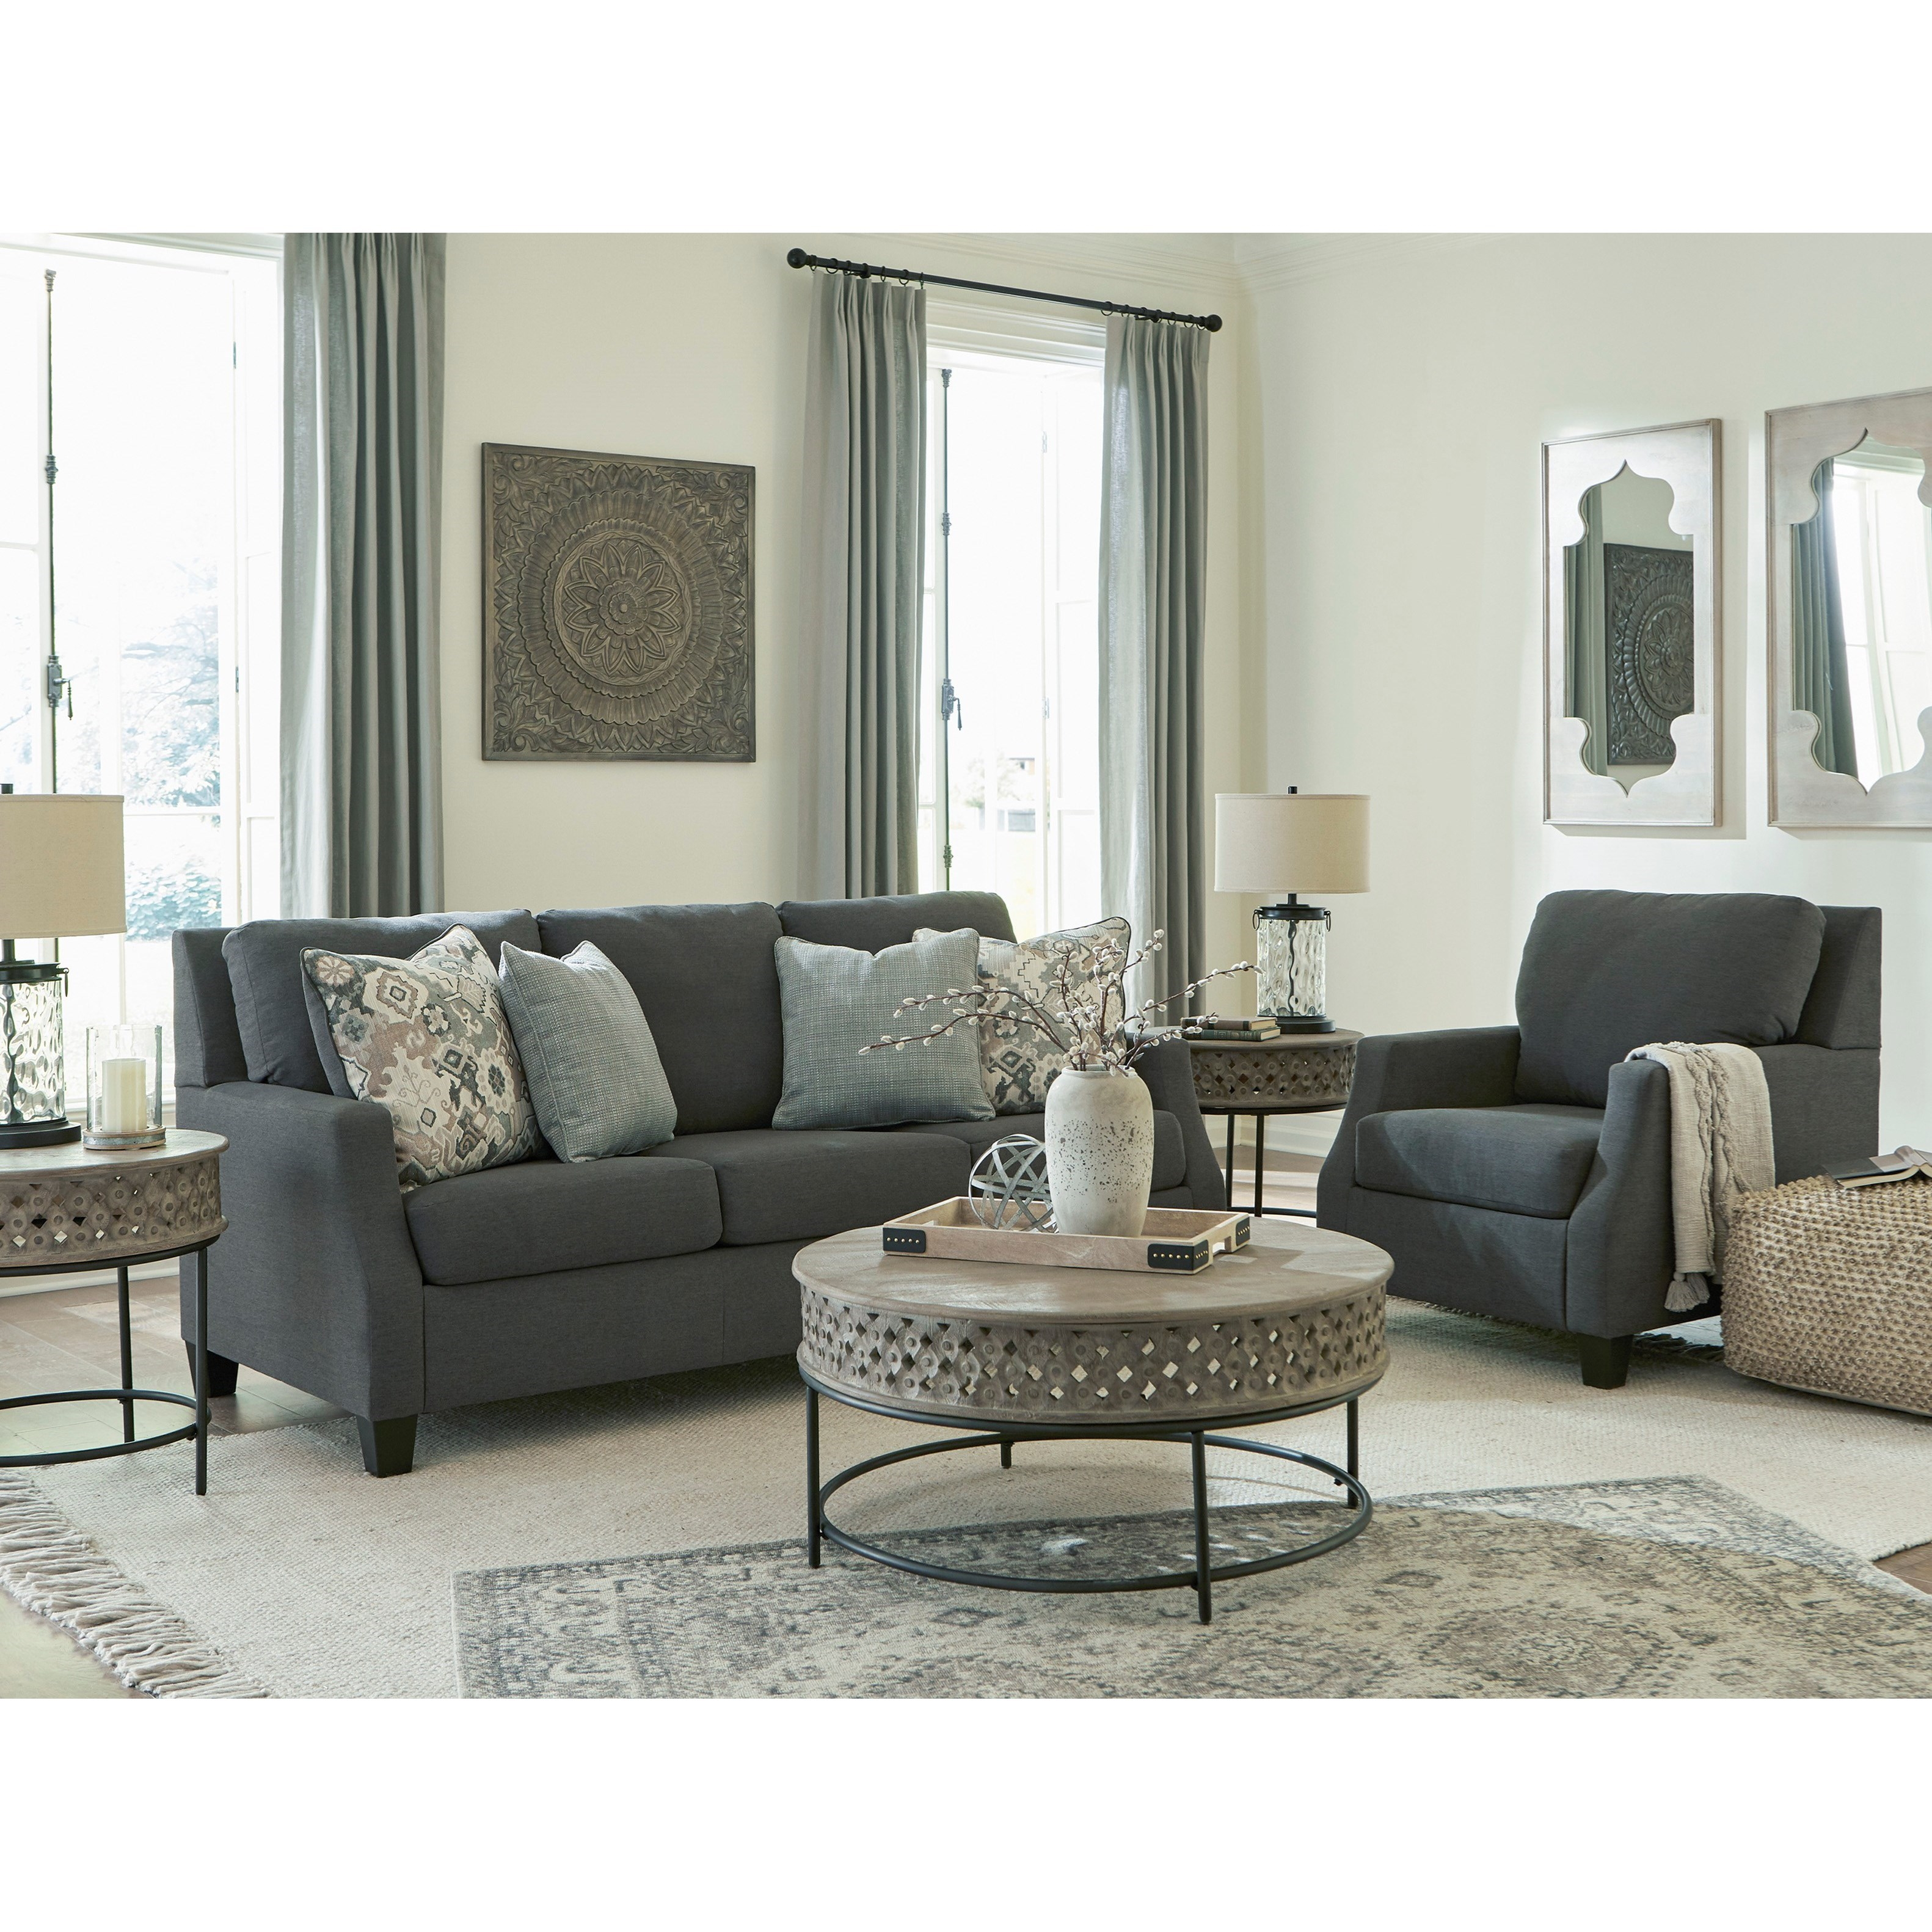 Bayonne Living Room Group by Signature Design by Ashley at Lapeer Furniture & Mattress Center